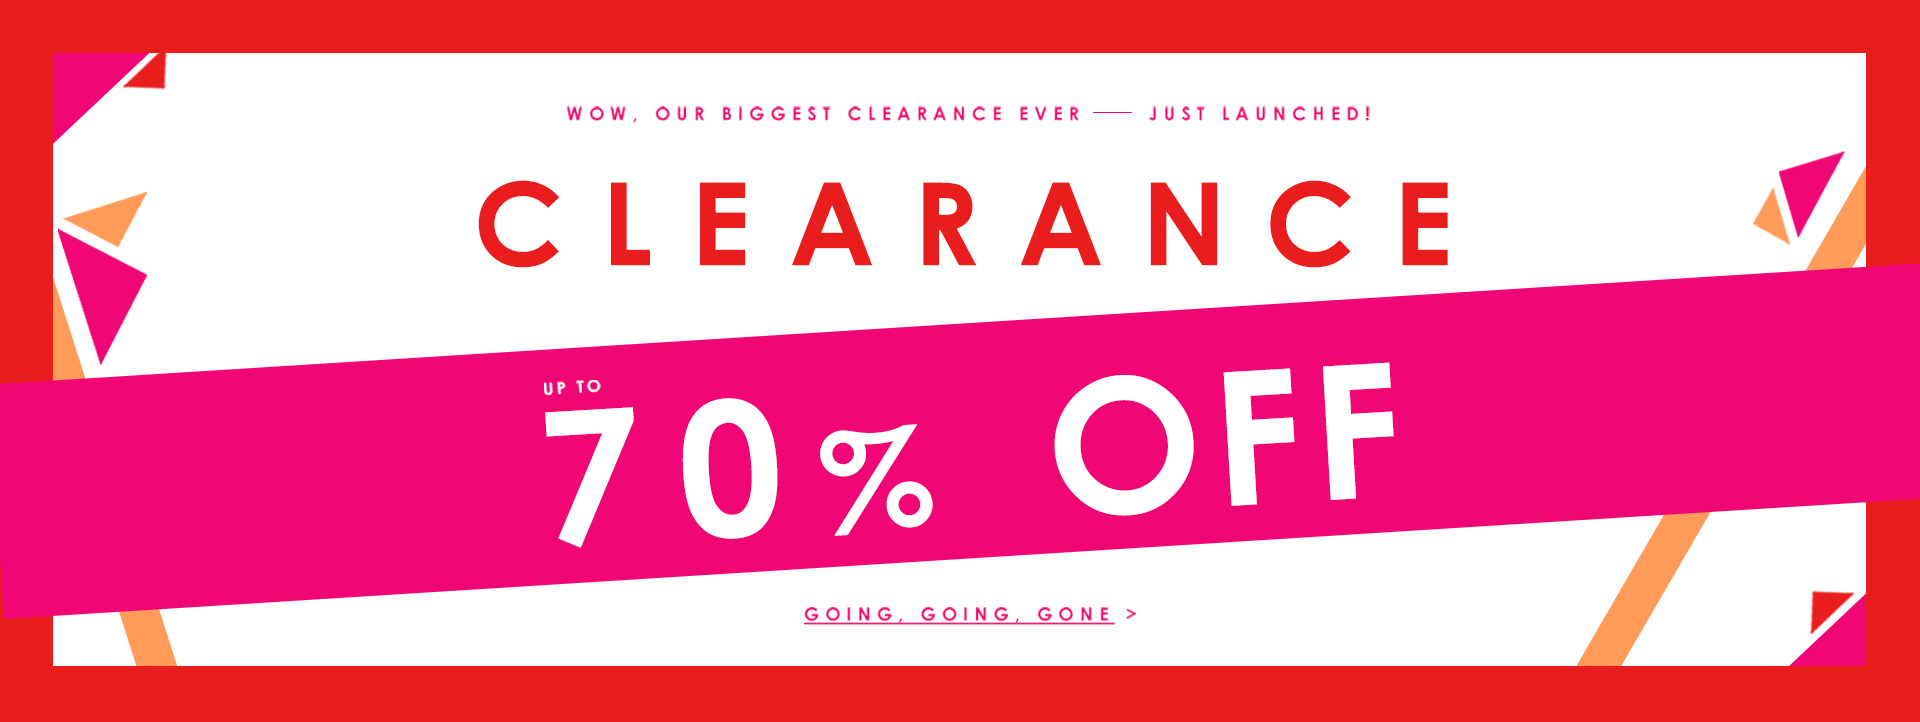 Save up to 70% off clearance sale at Yours Clothing.